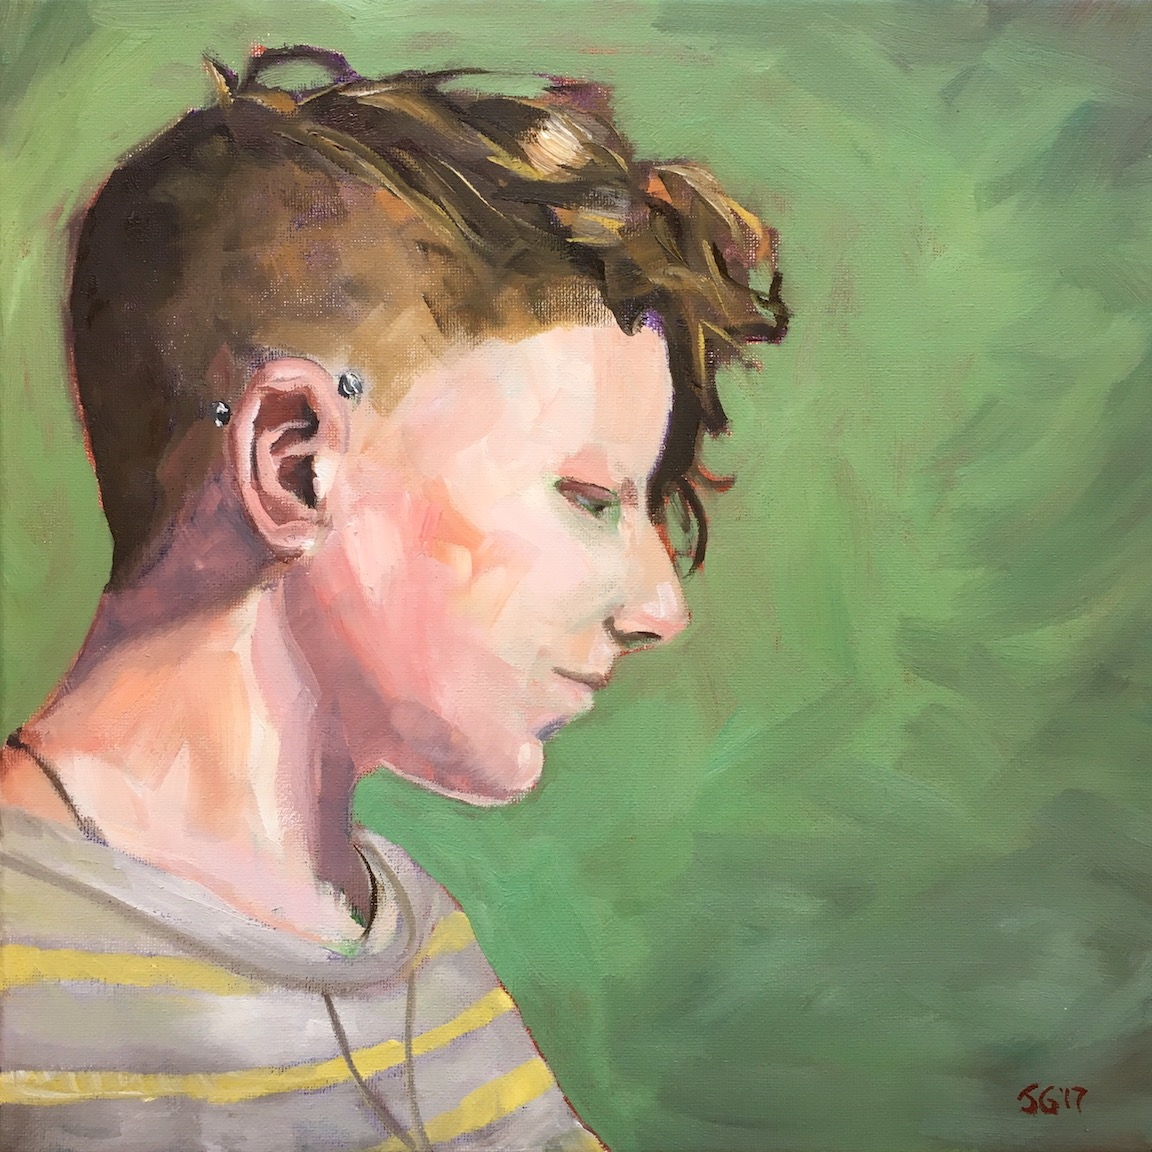 - I absolutely love portraiture, and strive to capture the spark of individuality with expressive paint handling and a distinctive personal touch. Size, pricing and shipping will vary according to your project; expect to invest at least $500—$800.Email me at info@joshgatesart.com and let's get something started!